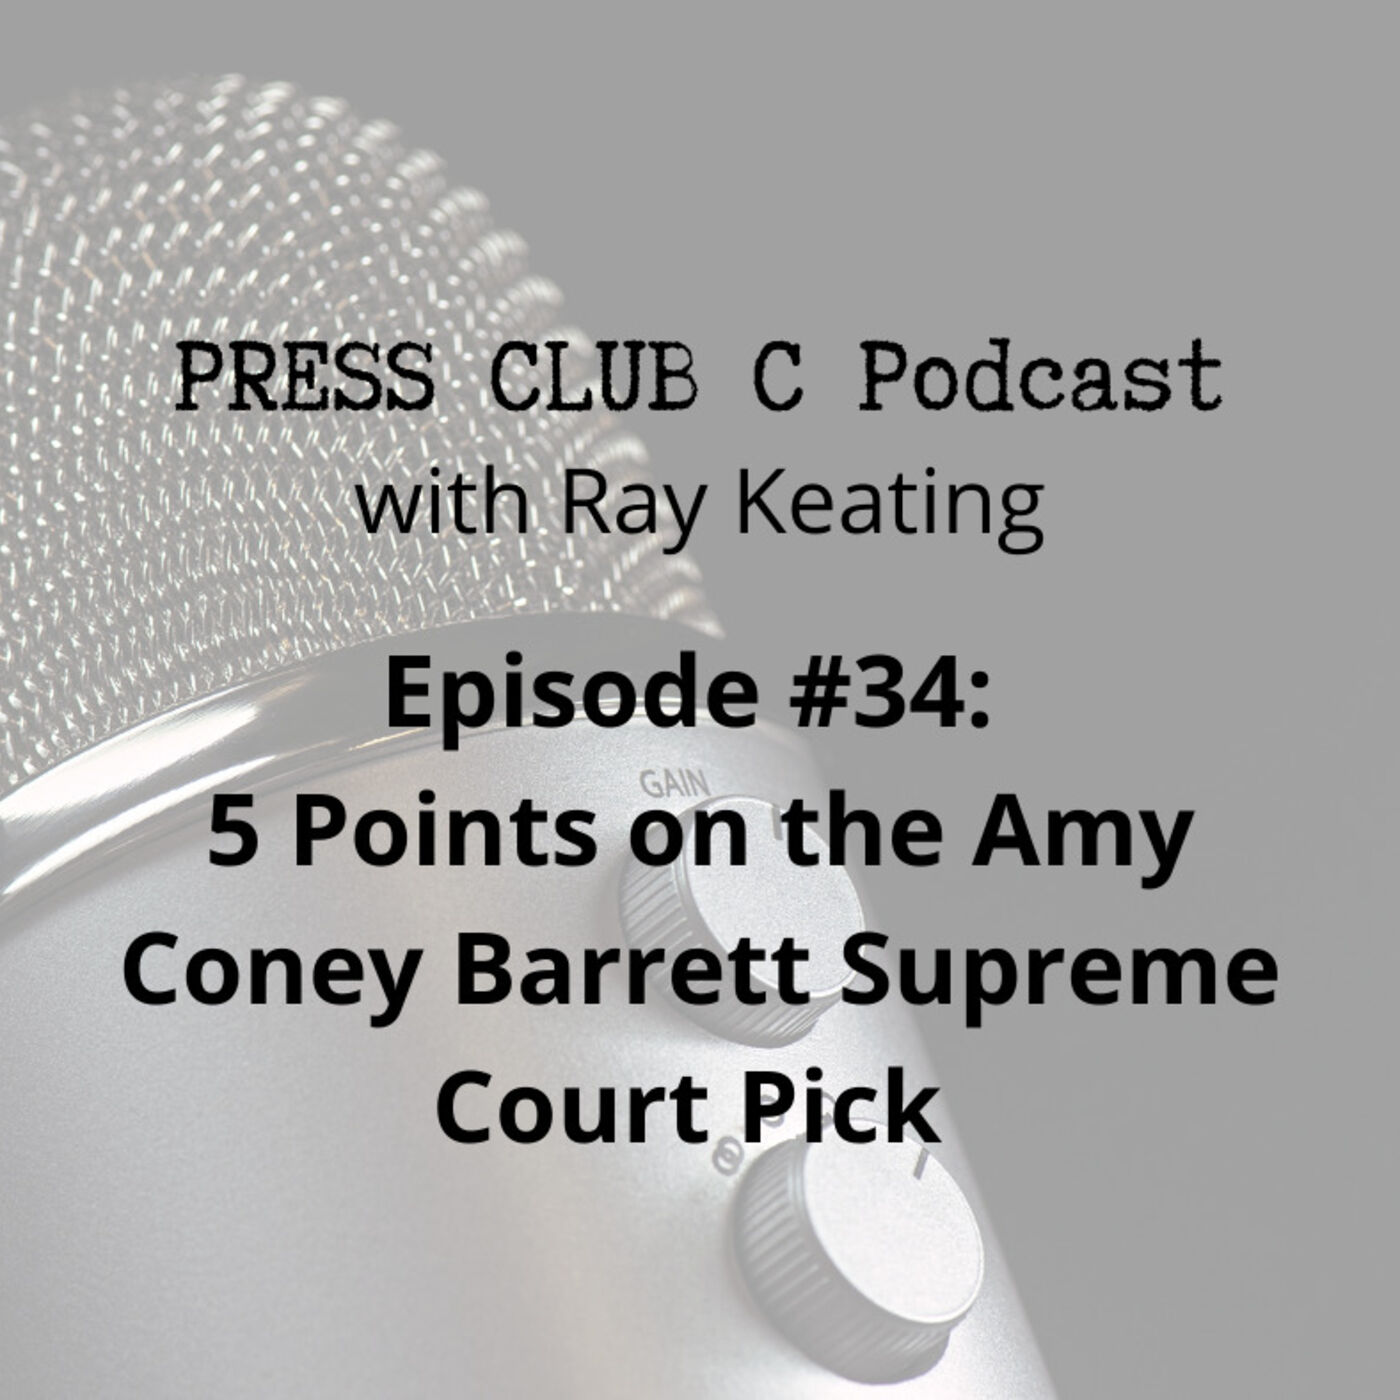 Episode #34: 5 Points on the Amy Coney Barrett Supreme Court Pick